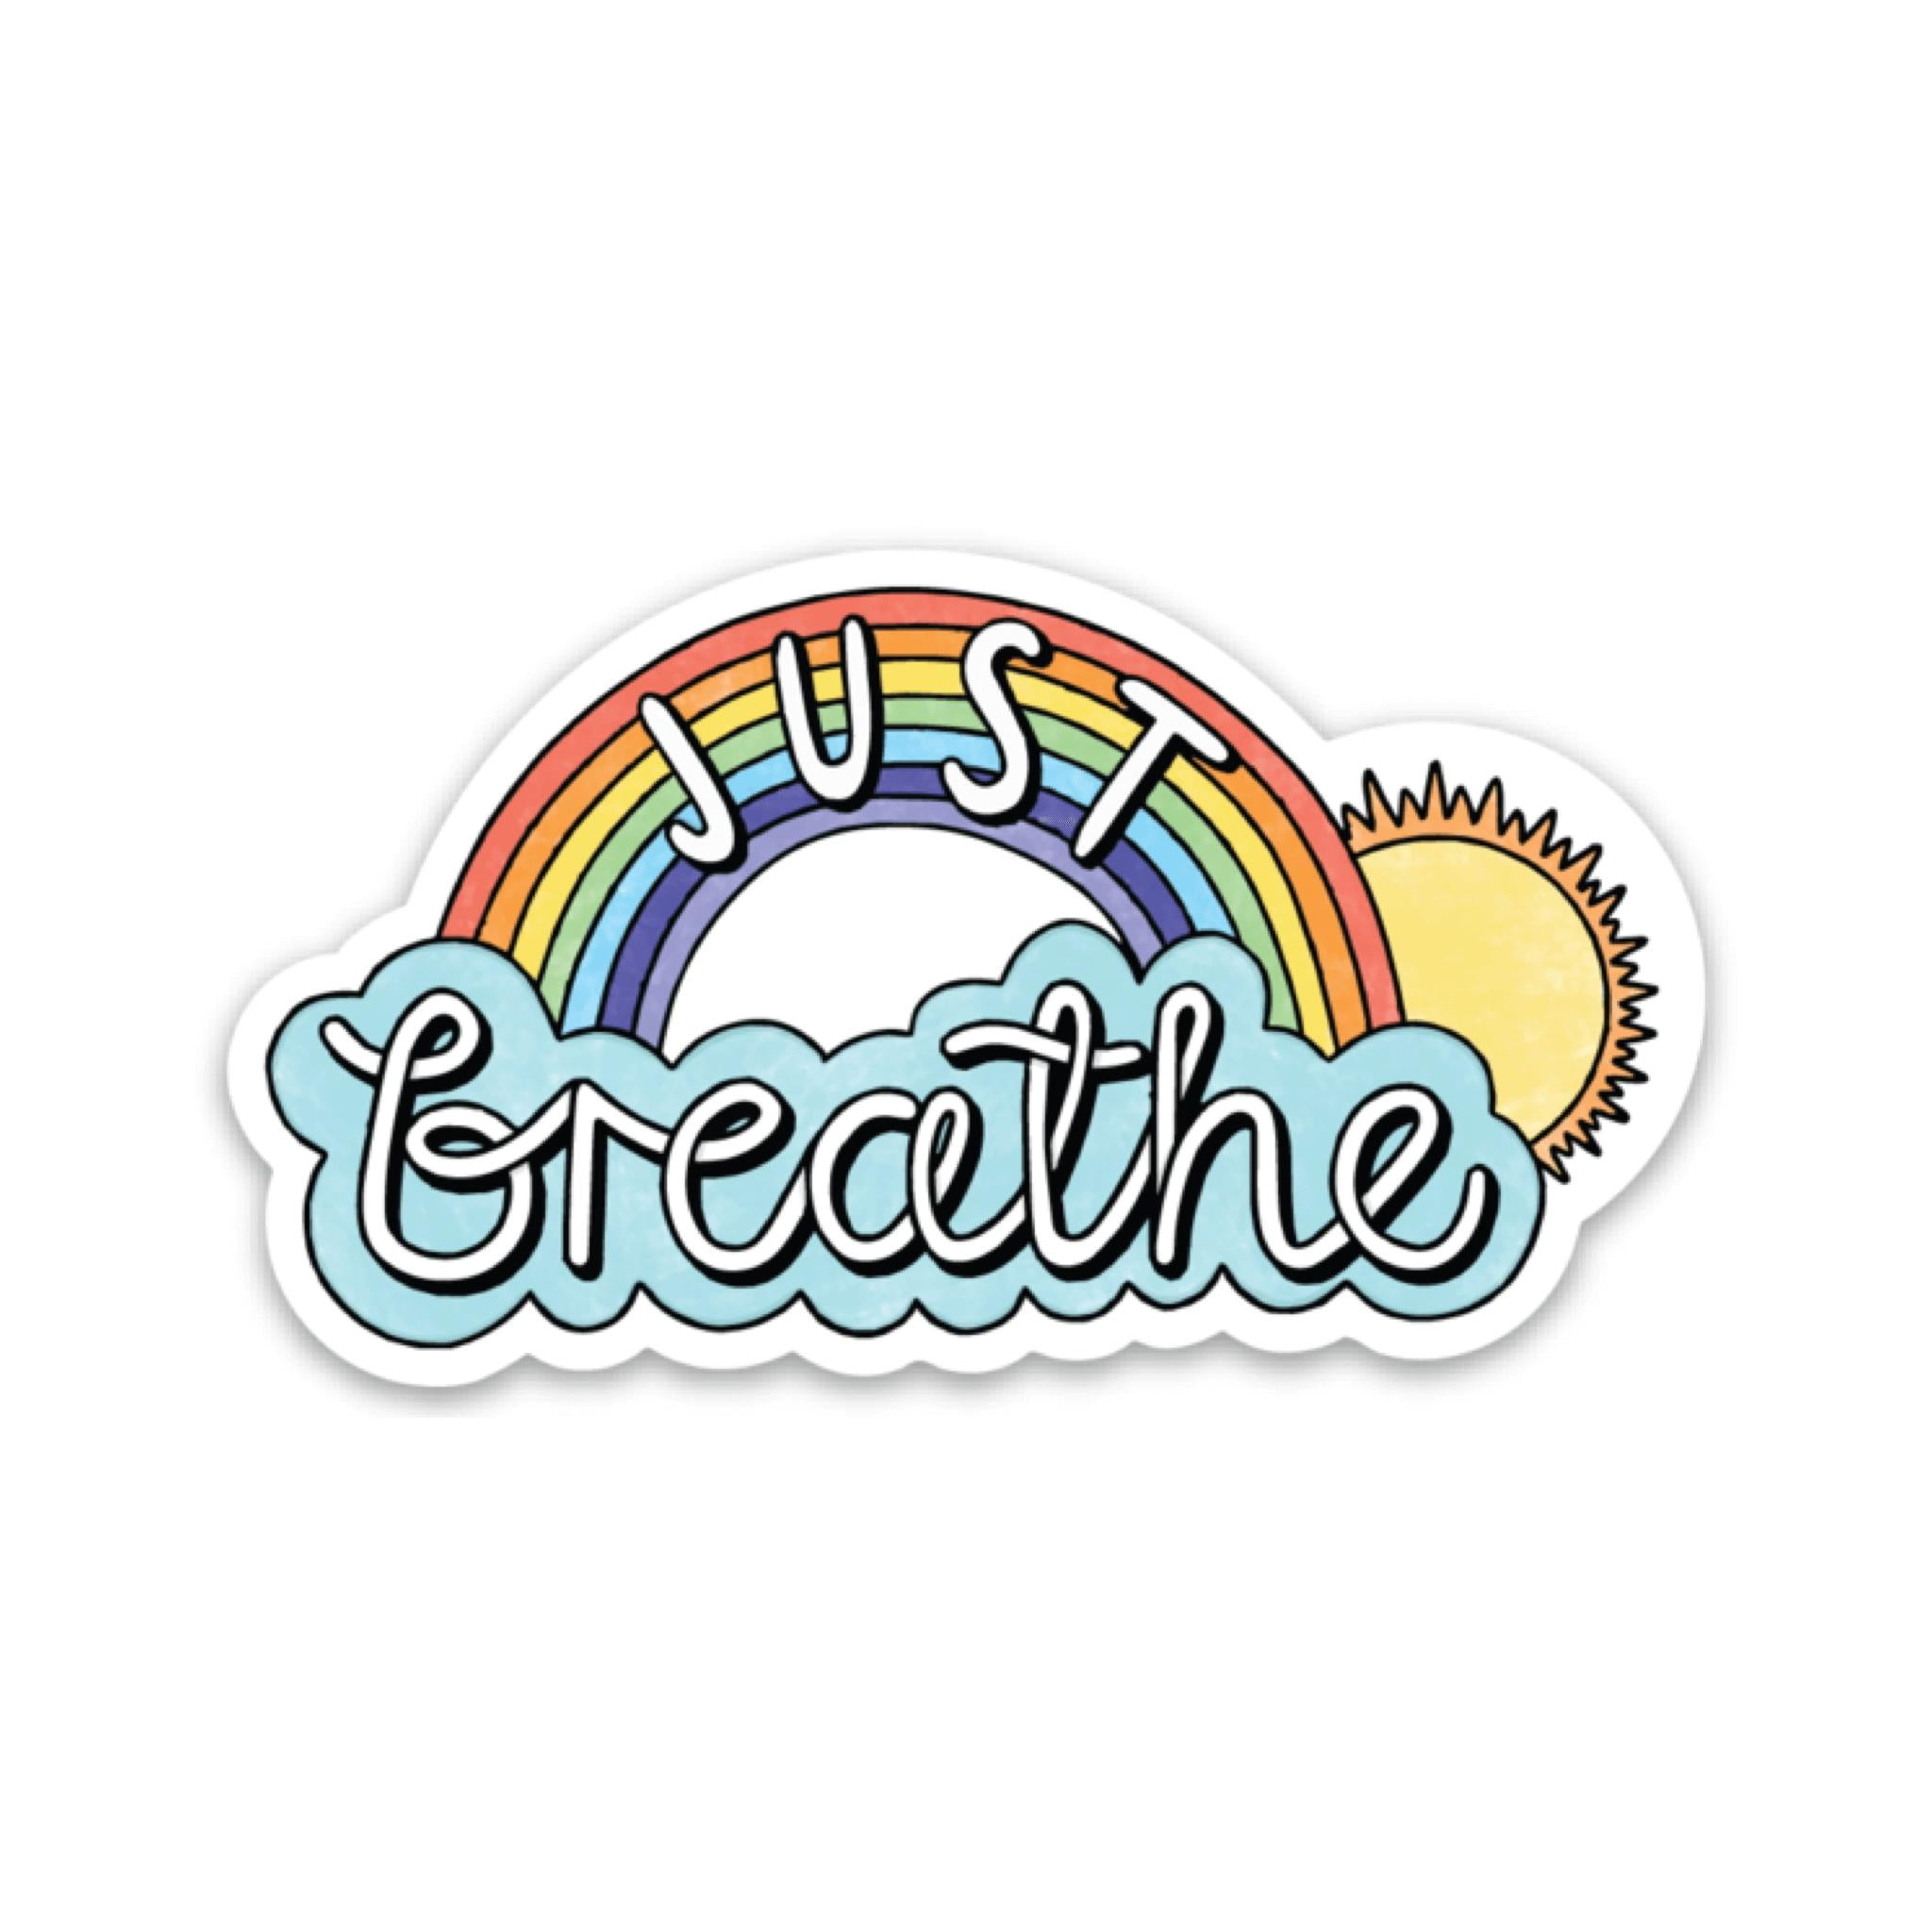 Just breathe - Sticker